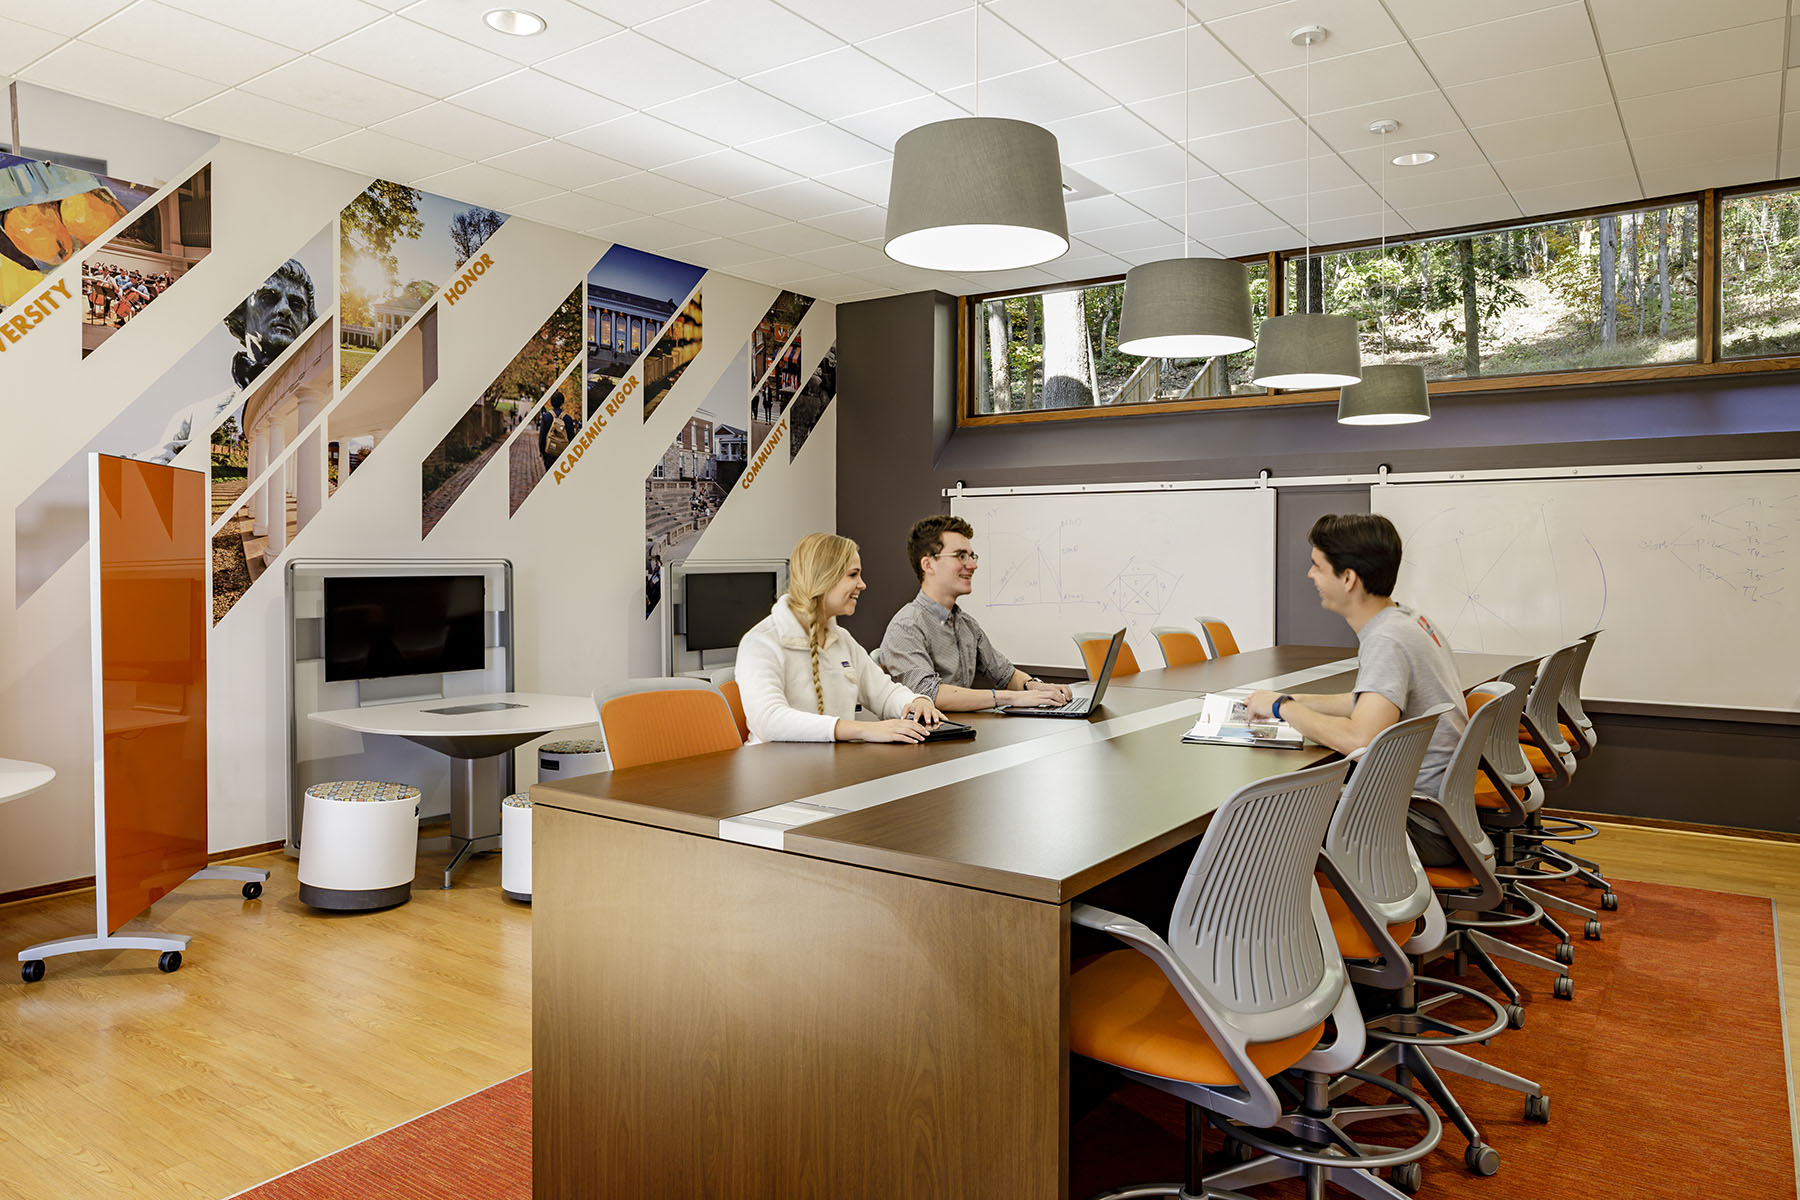 With a prominent location at a gateway to the University, the renovated Gooch-Dillard Hall sets a renewed first impression of student living at the University of Virginia.